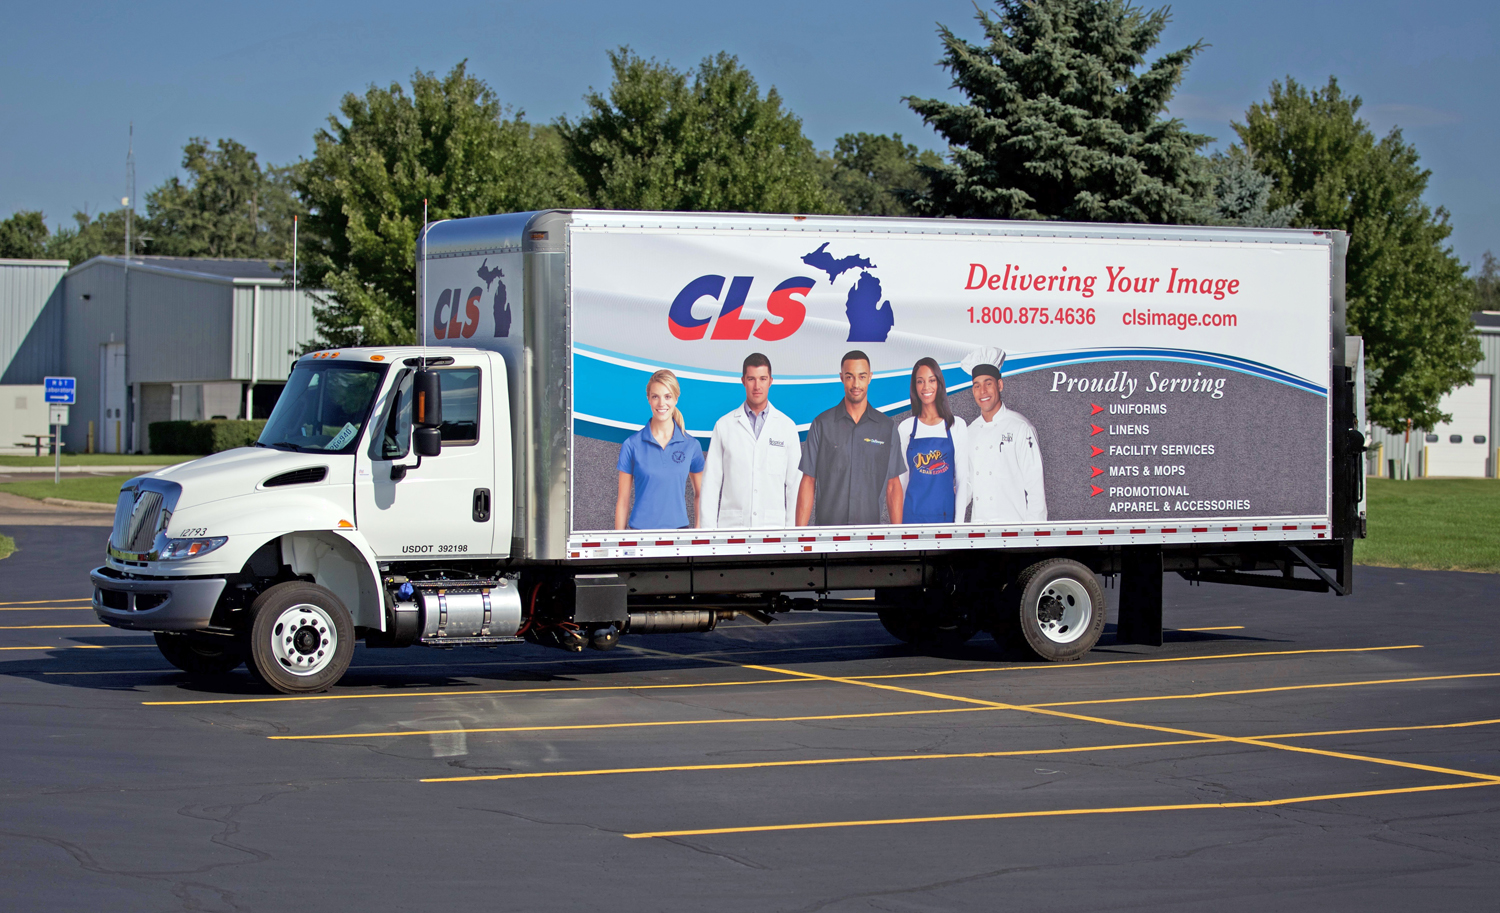 Agio Imaging (Kalamazoo, MI) utilized Tensioning Solutions' TS23 Stretch Frame system on this truck graphic.